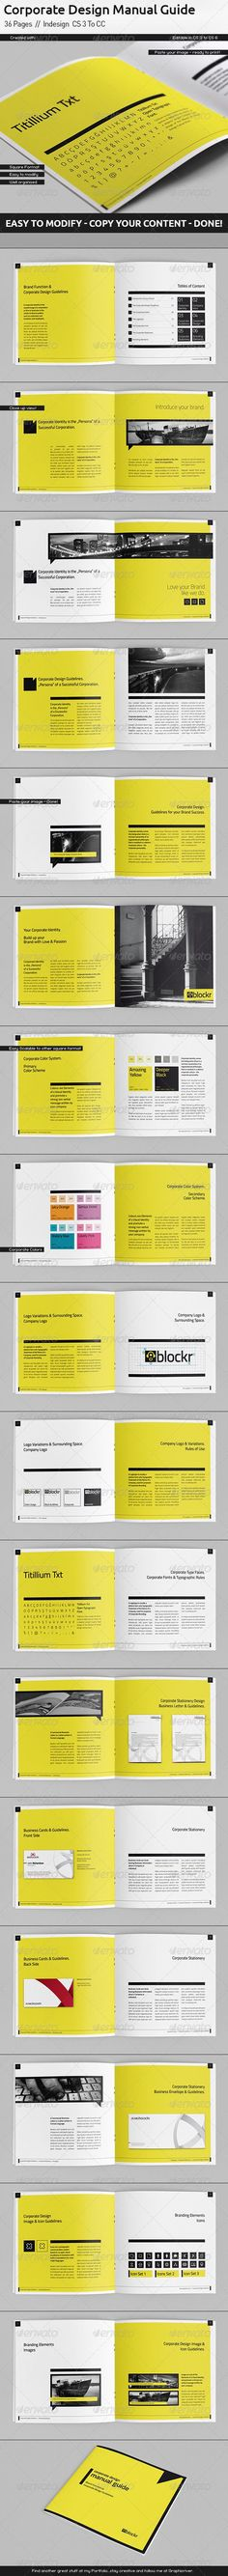 Corporate Design Manual Guide  Corporate Design Manual Corporate